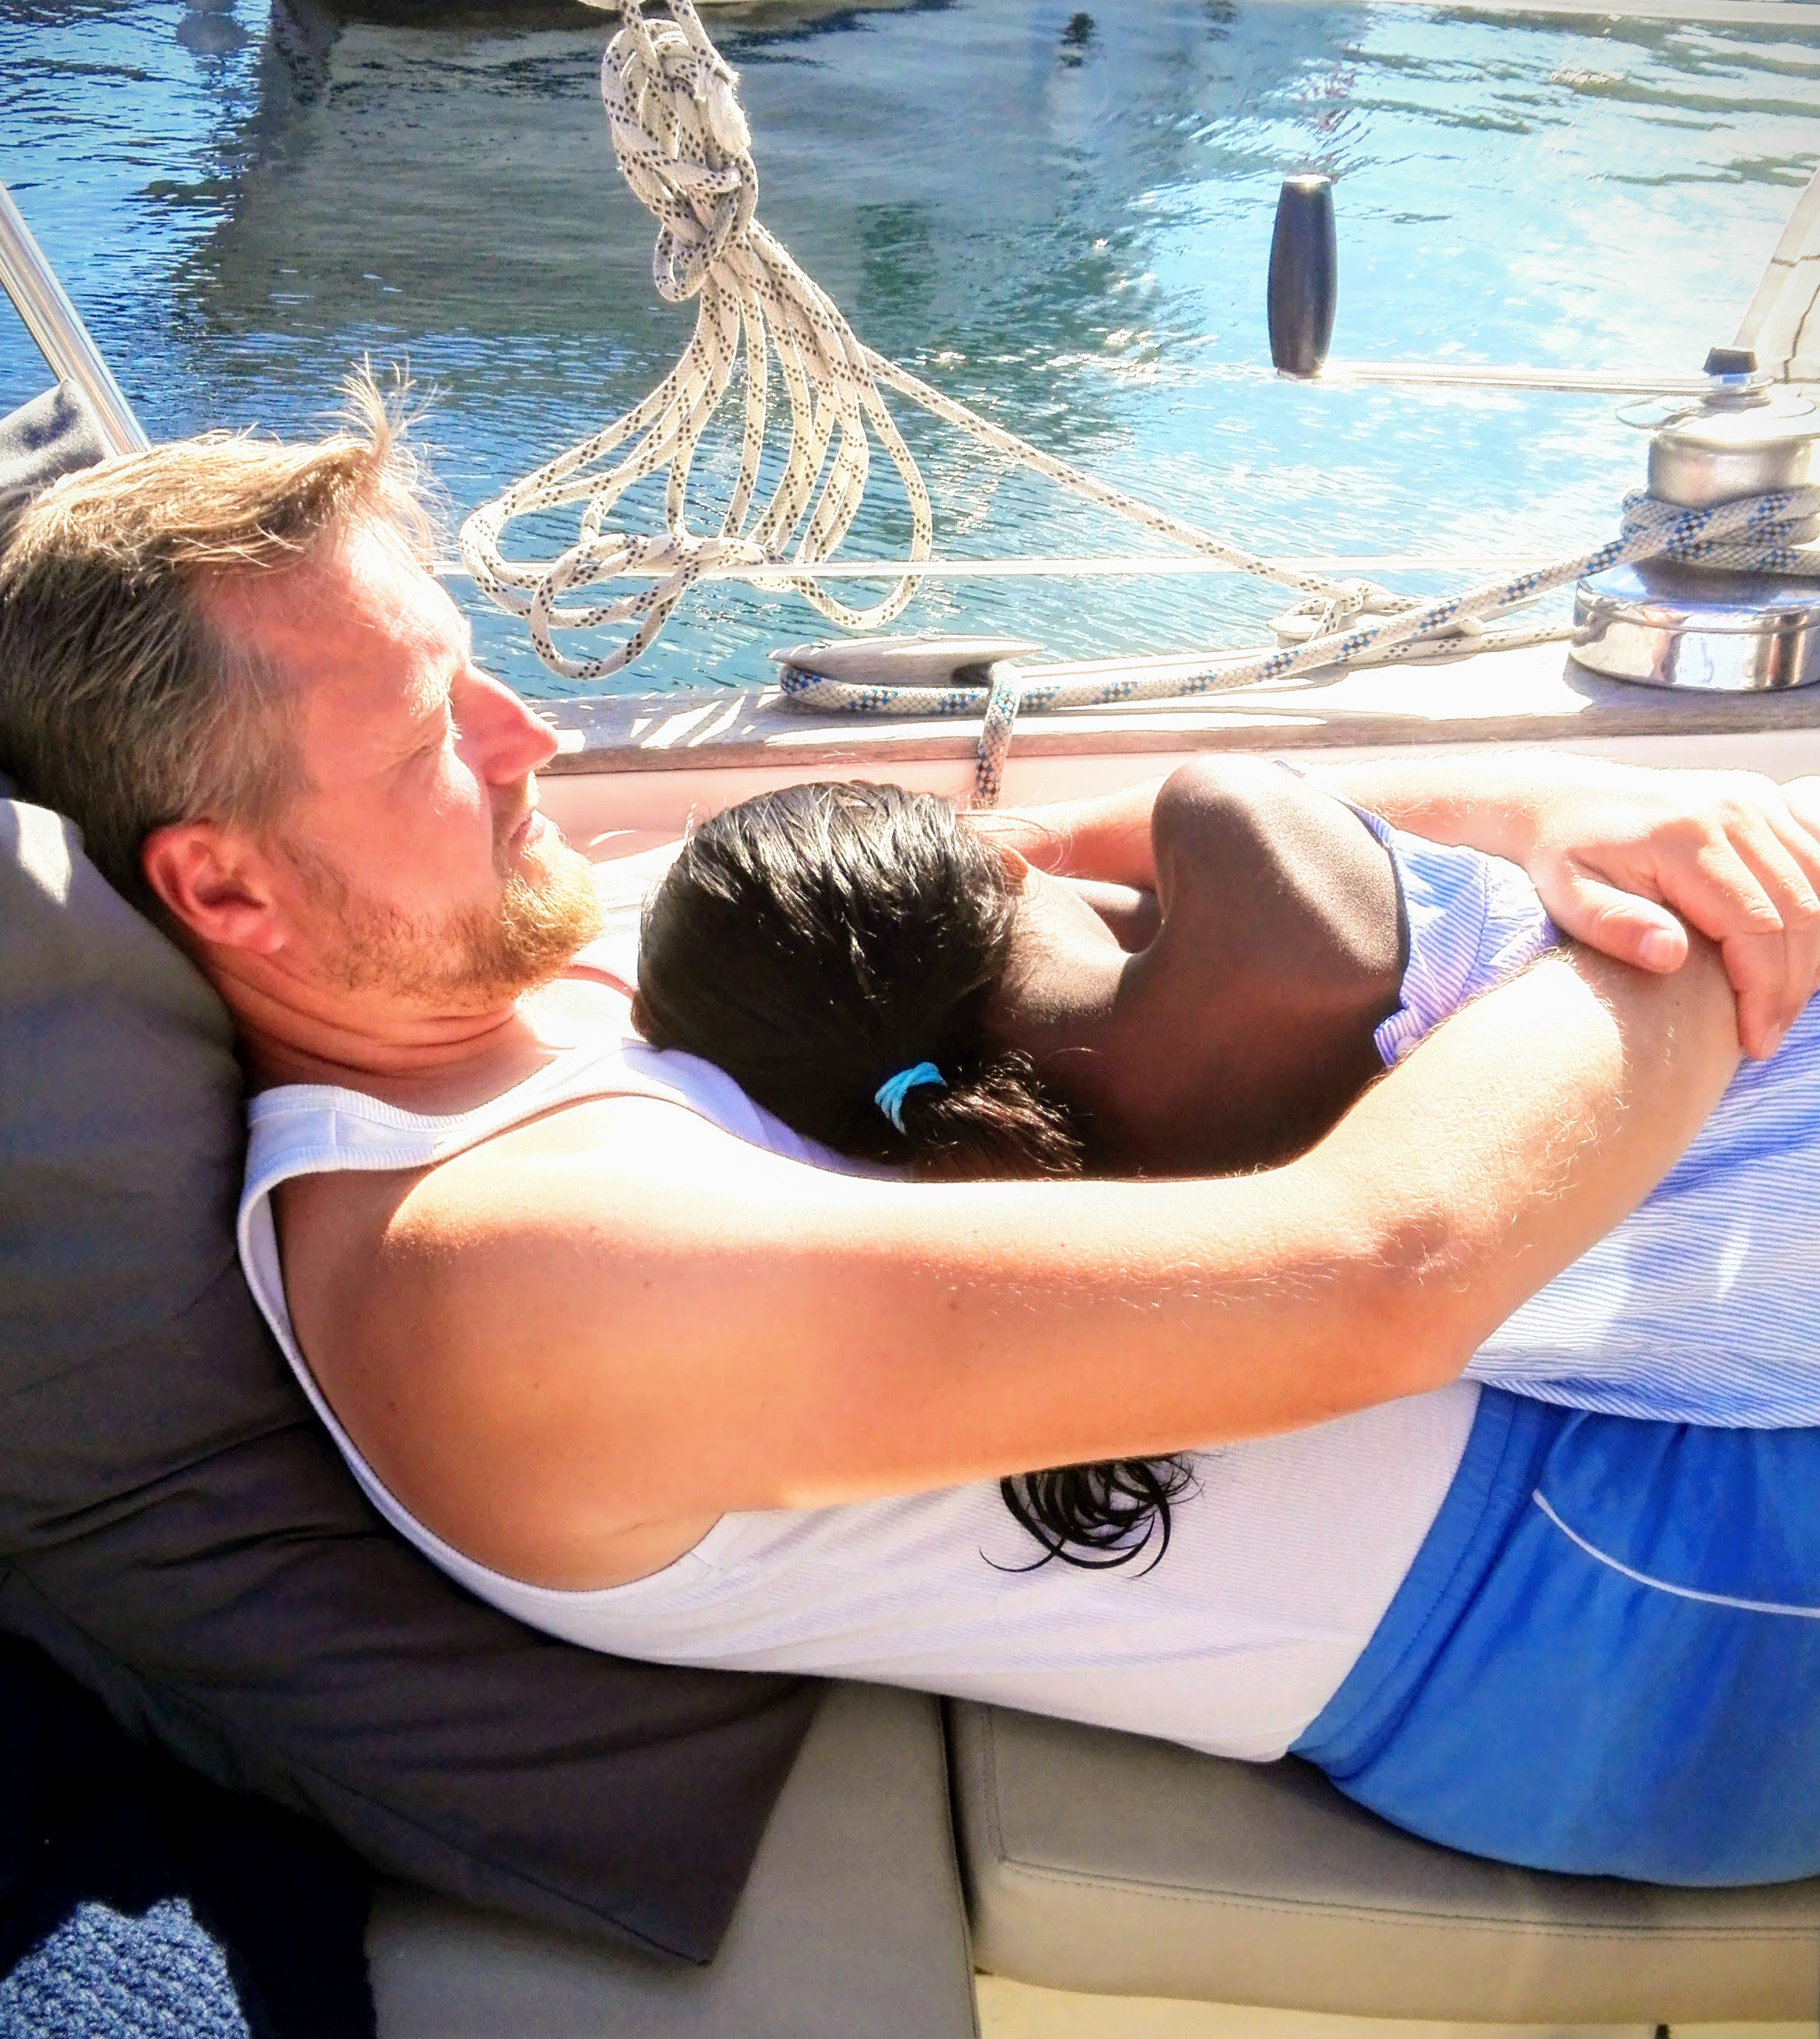 Man lying on a sailboat and holding his sleeping daughter in the arms